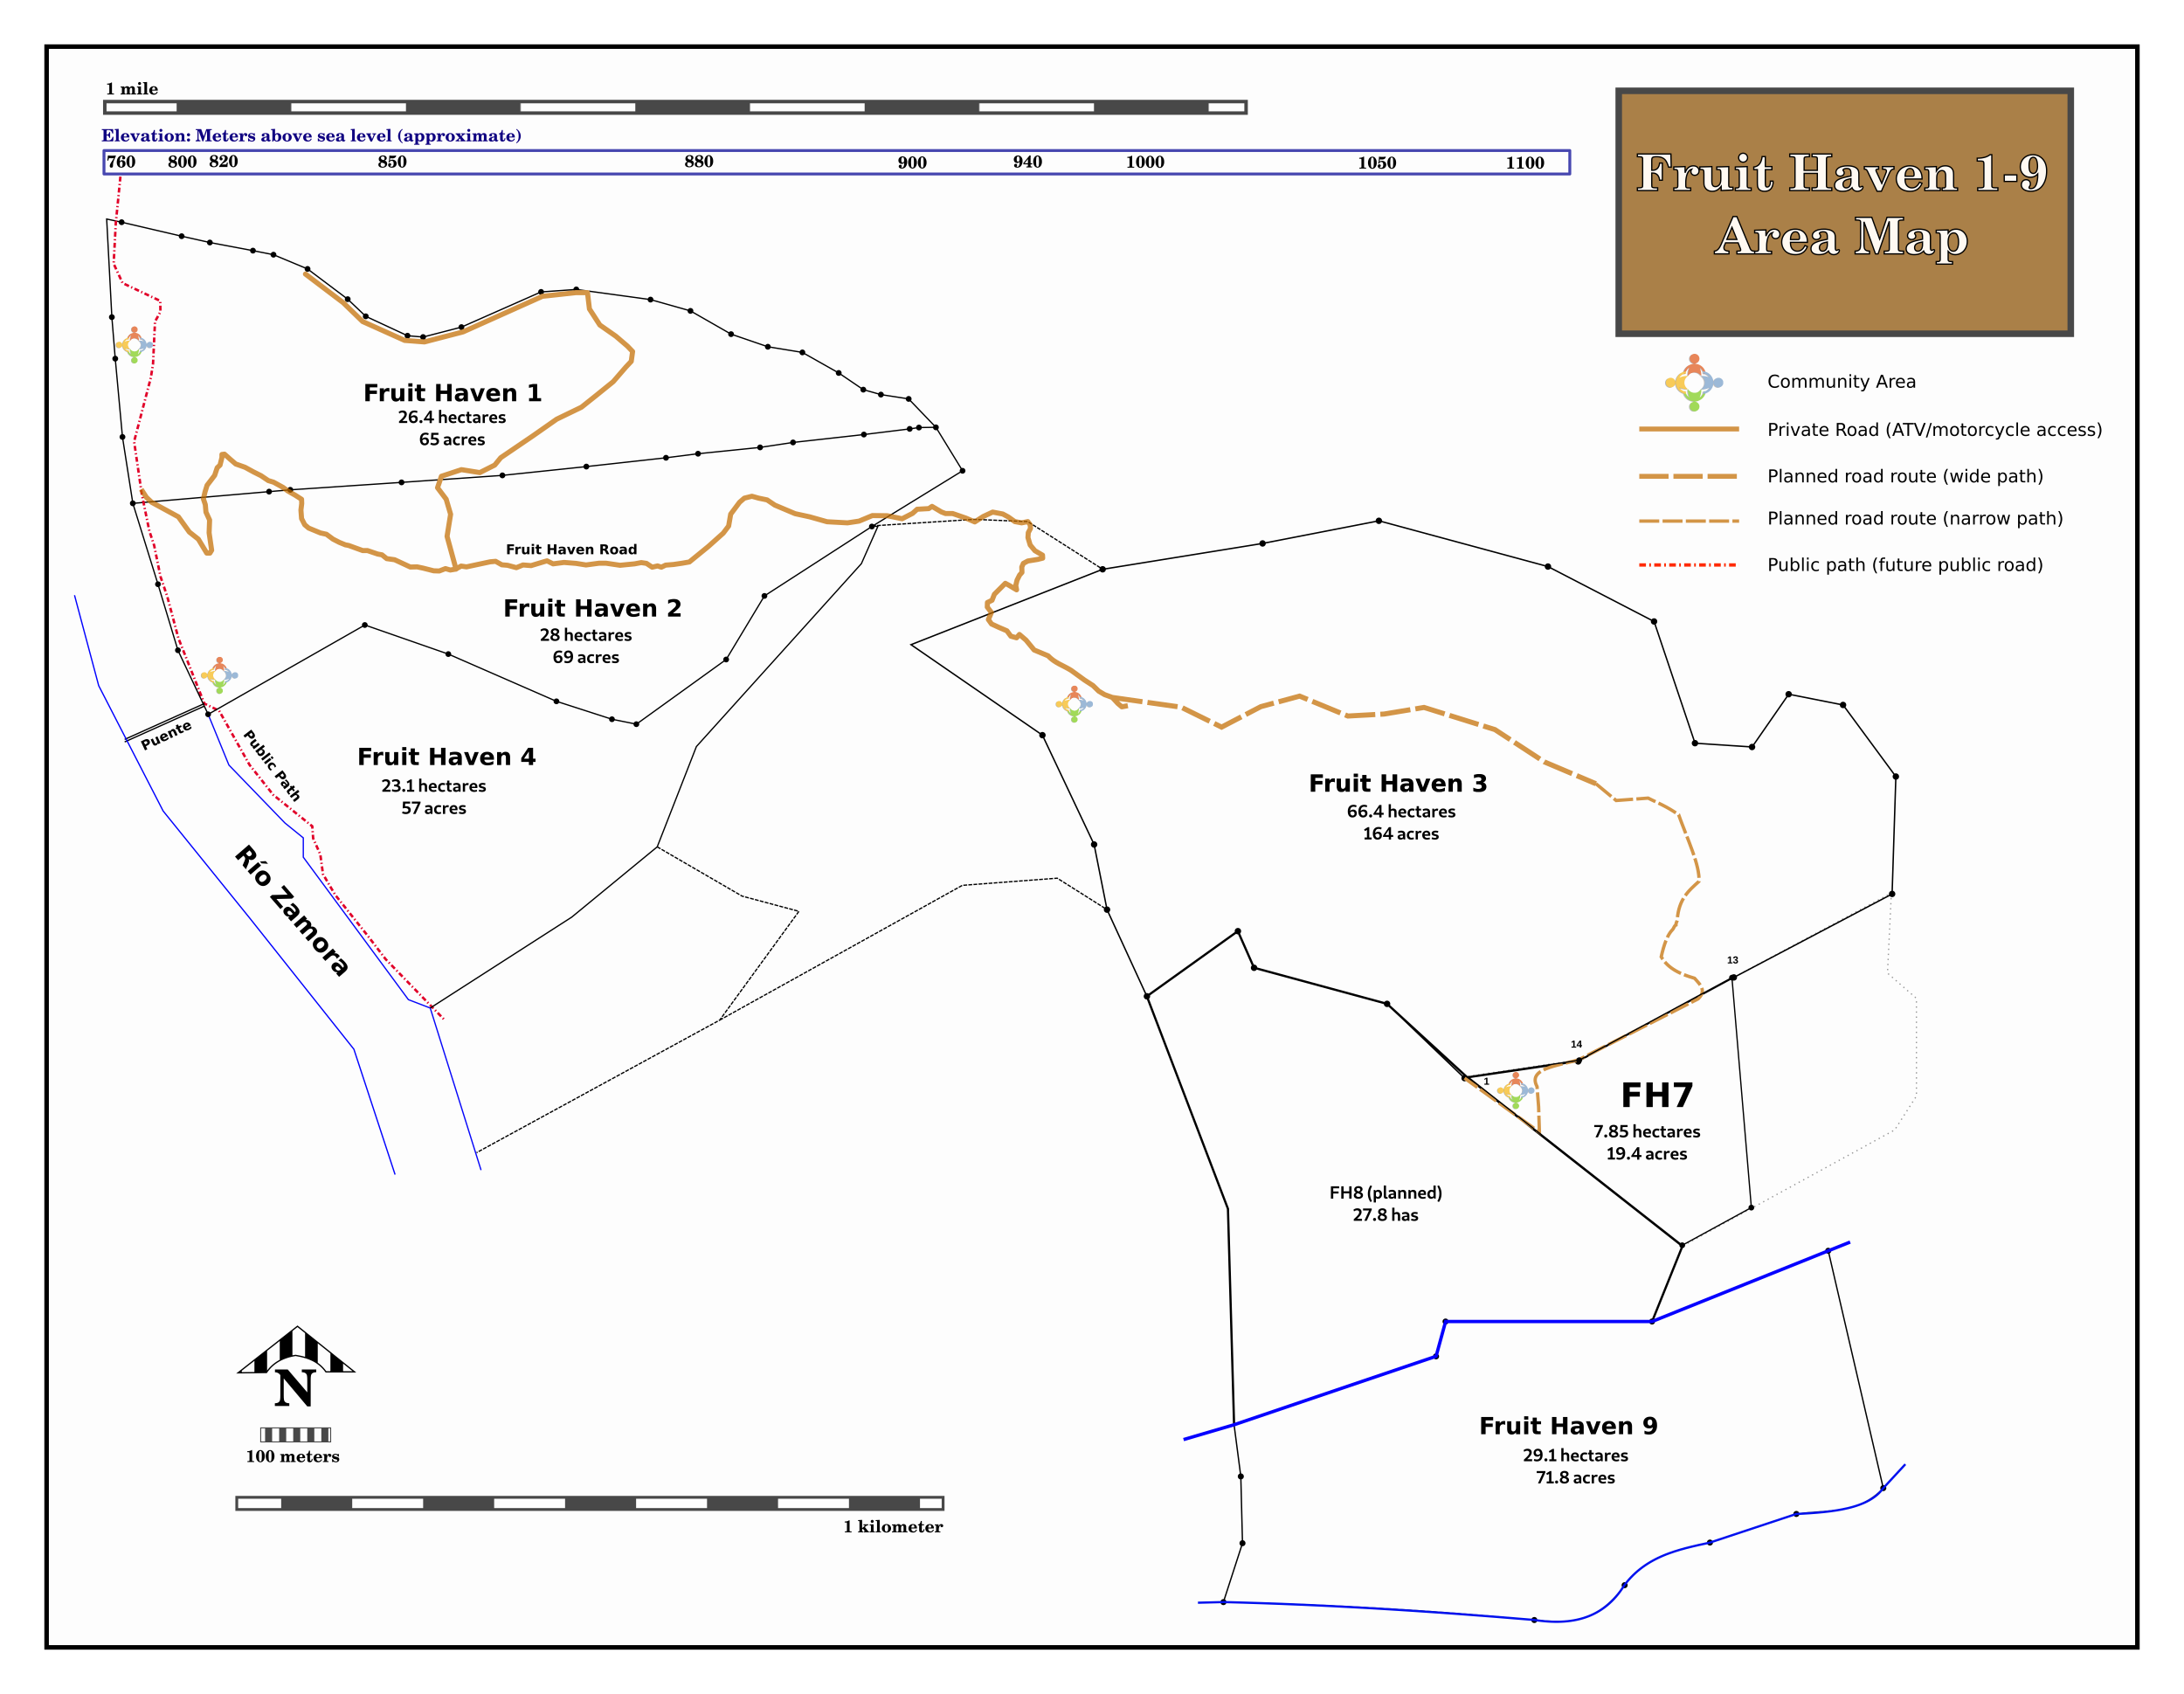 Fruit Haven area map